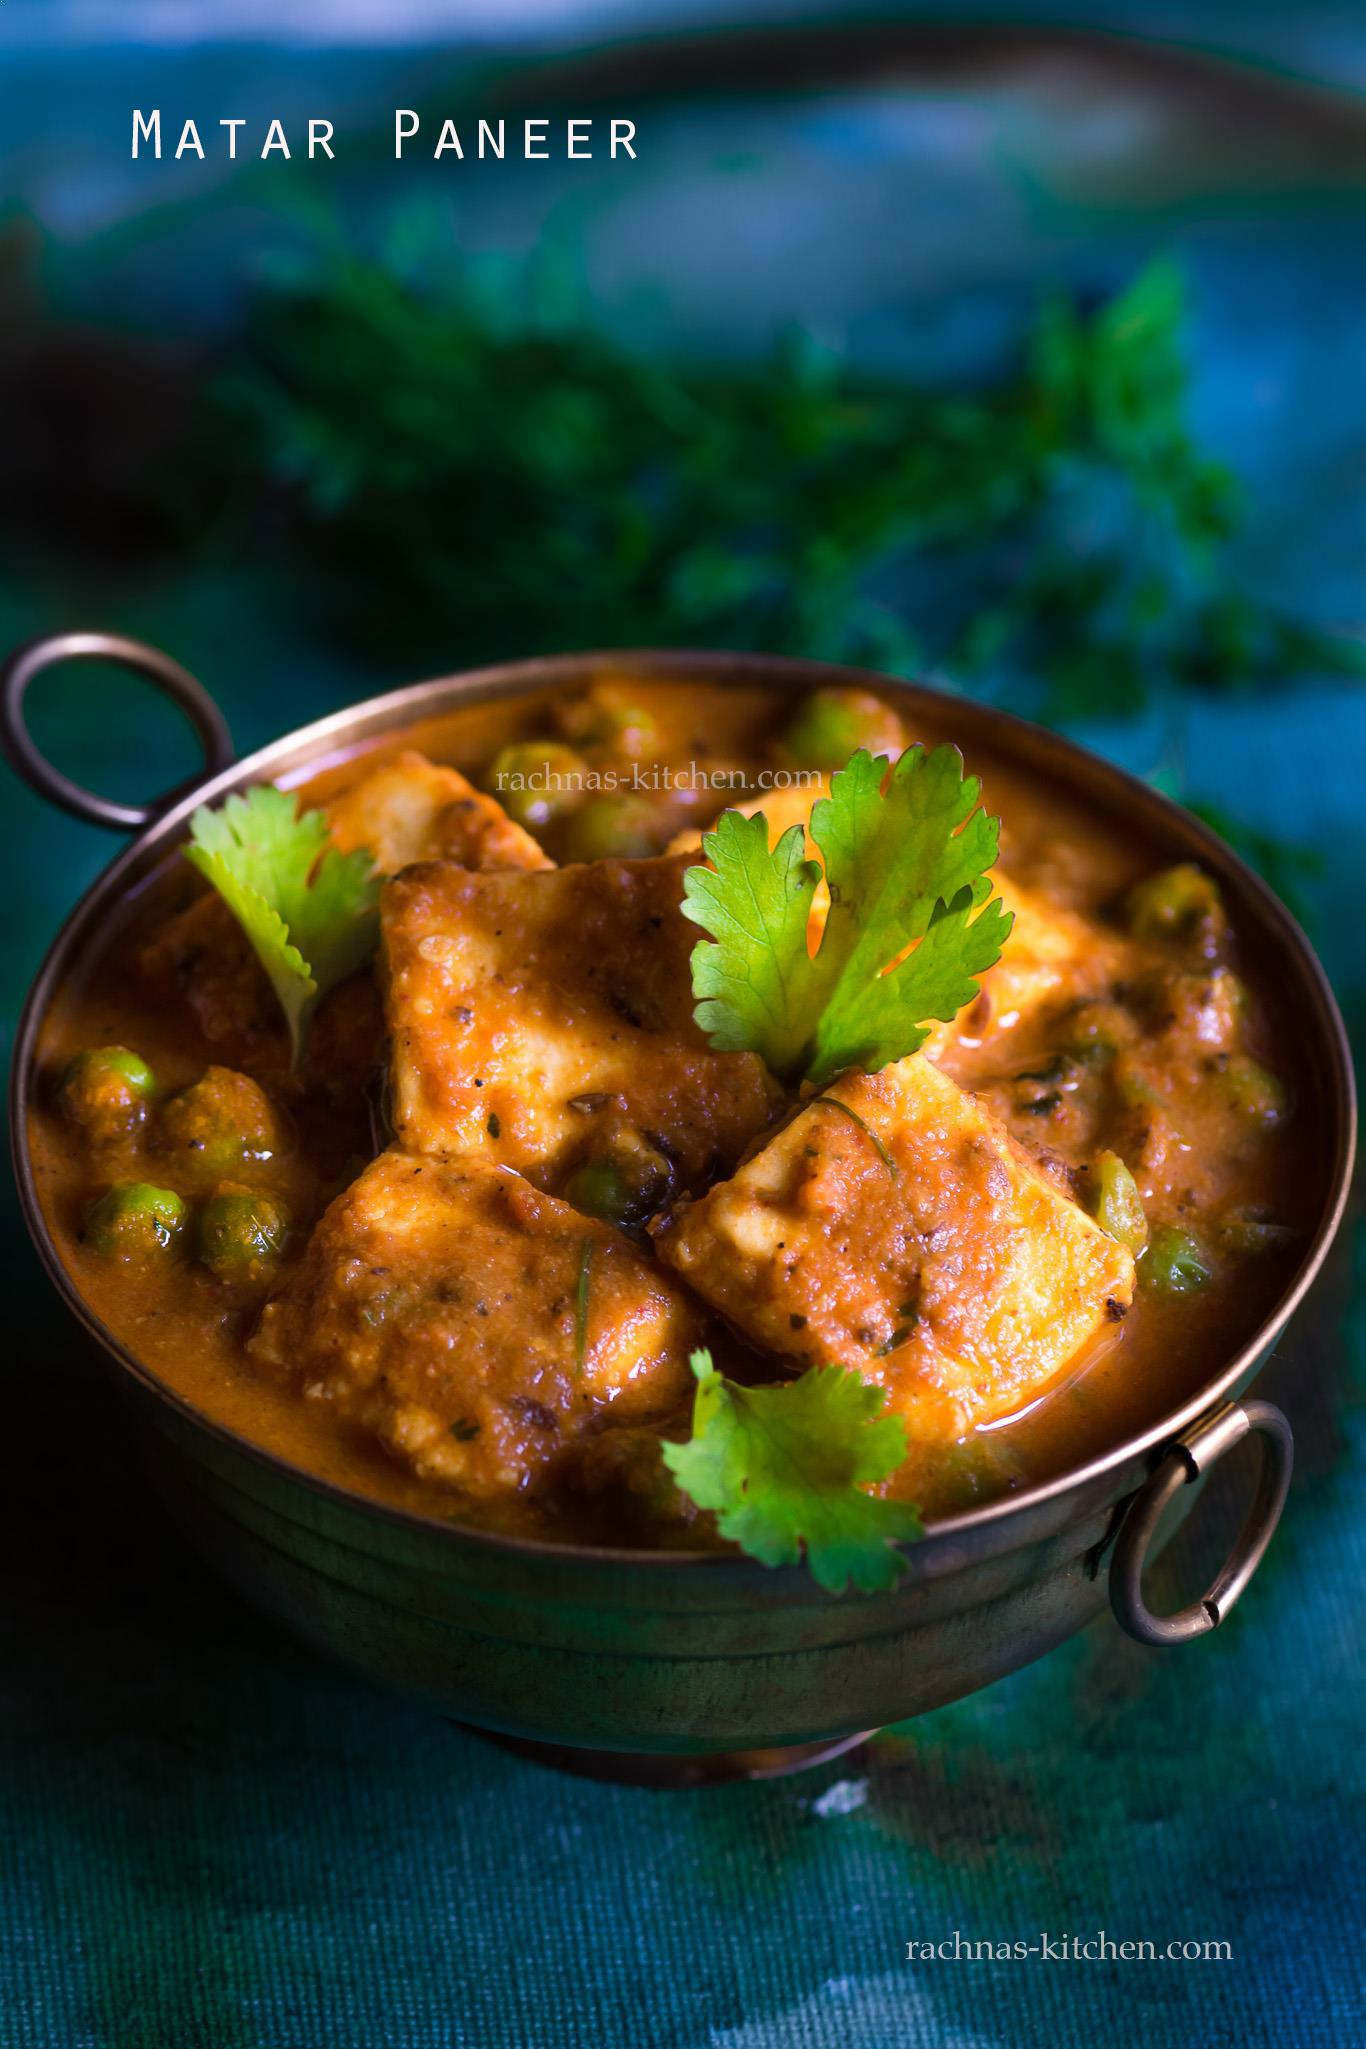 Matar paneer recipe, Mutter paneer masala recipe (Video Recipe)